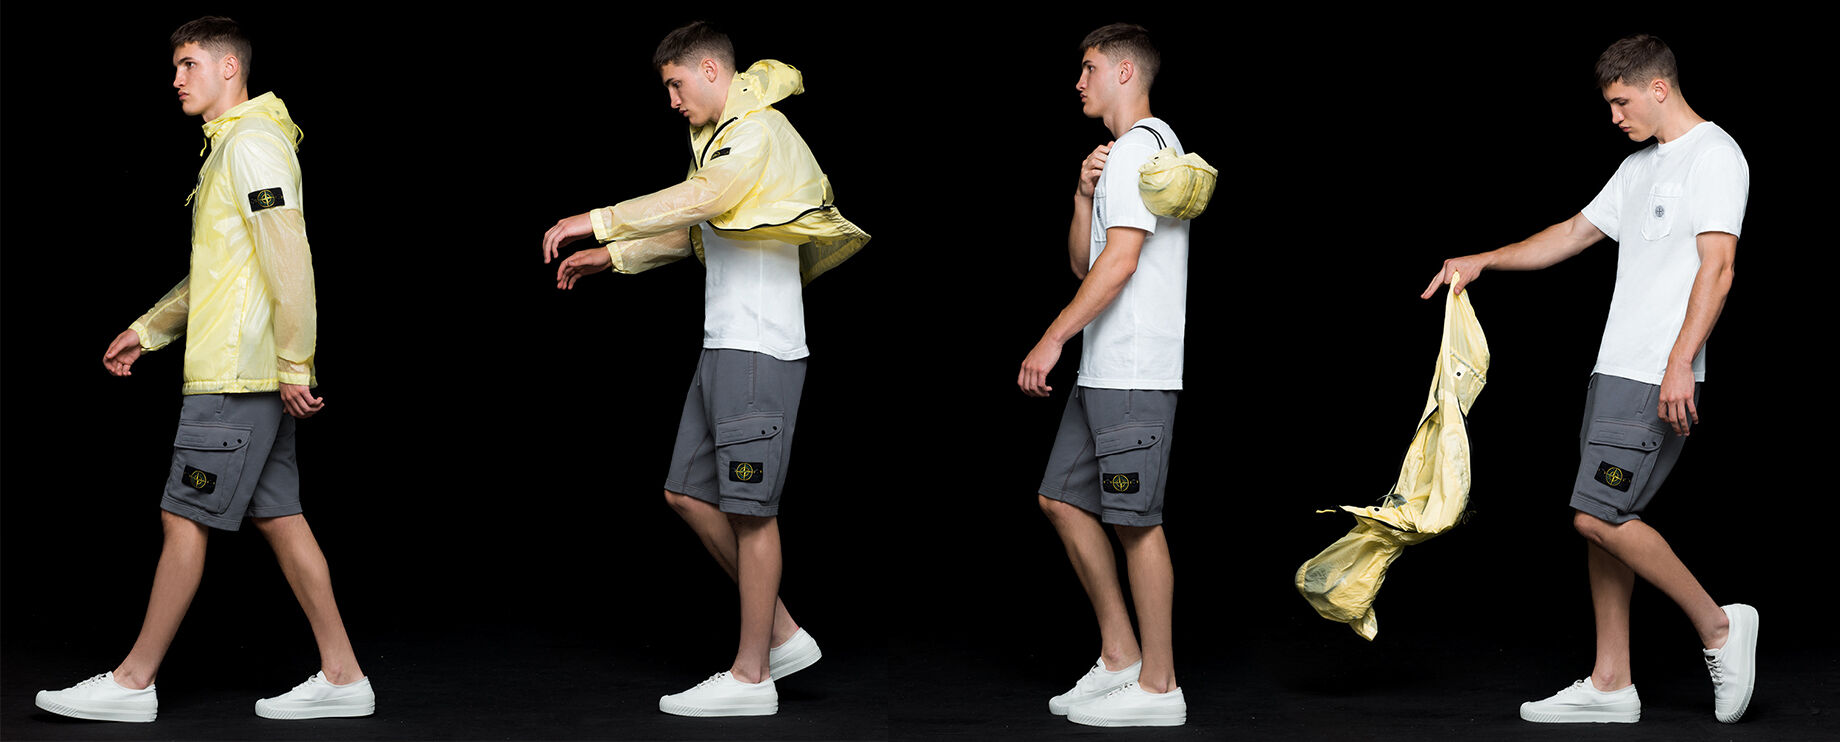 Four shots of the same model wearing gray cargo shorts, a white crewneck T shirt and a yellow see through hooded jacket with shiny effect, showing that the jacket is pocketable and can be stored in a carrying pouch.